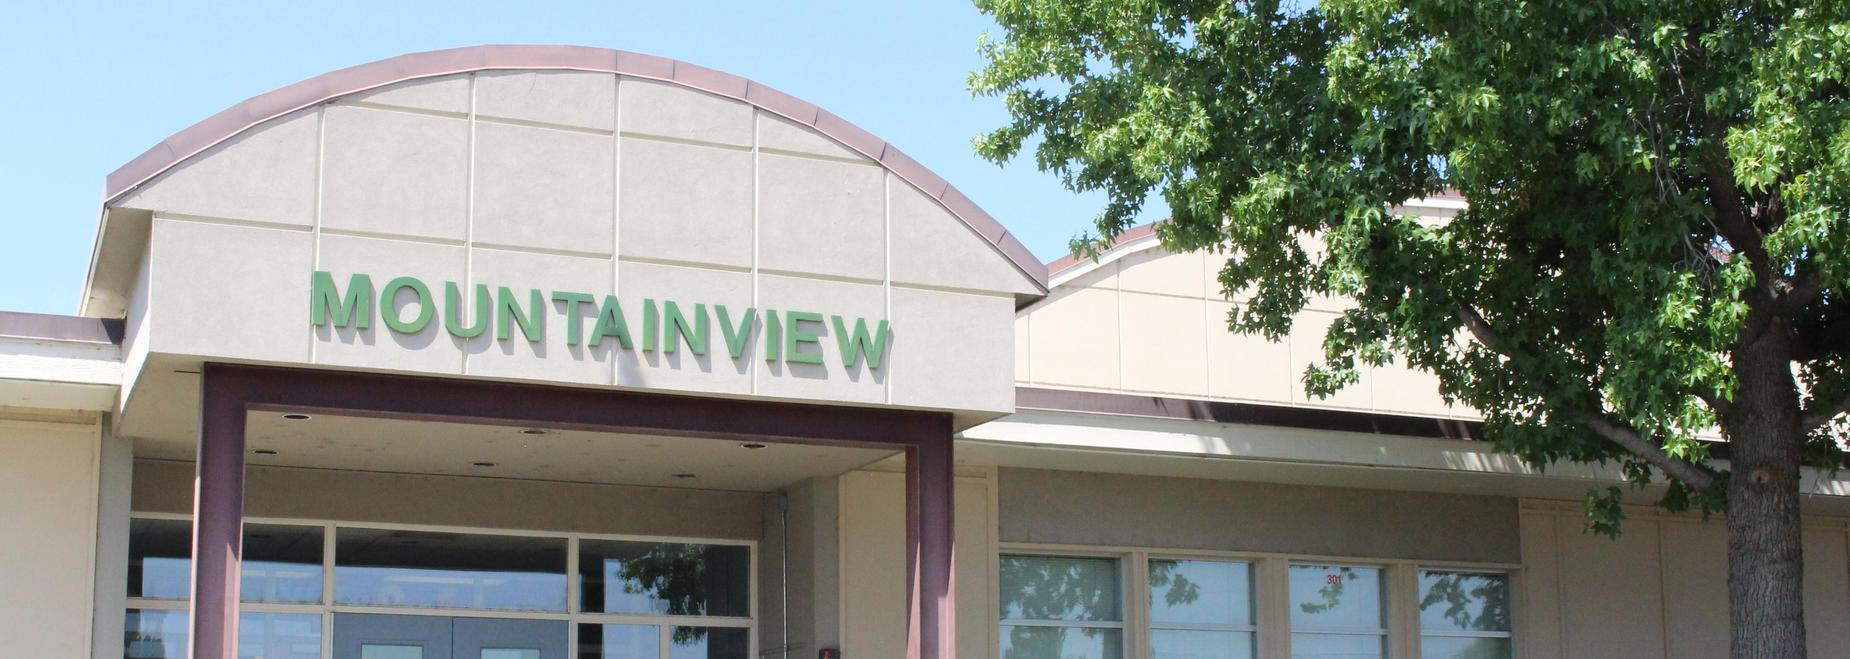 Mountainview Elementary entrance